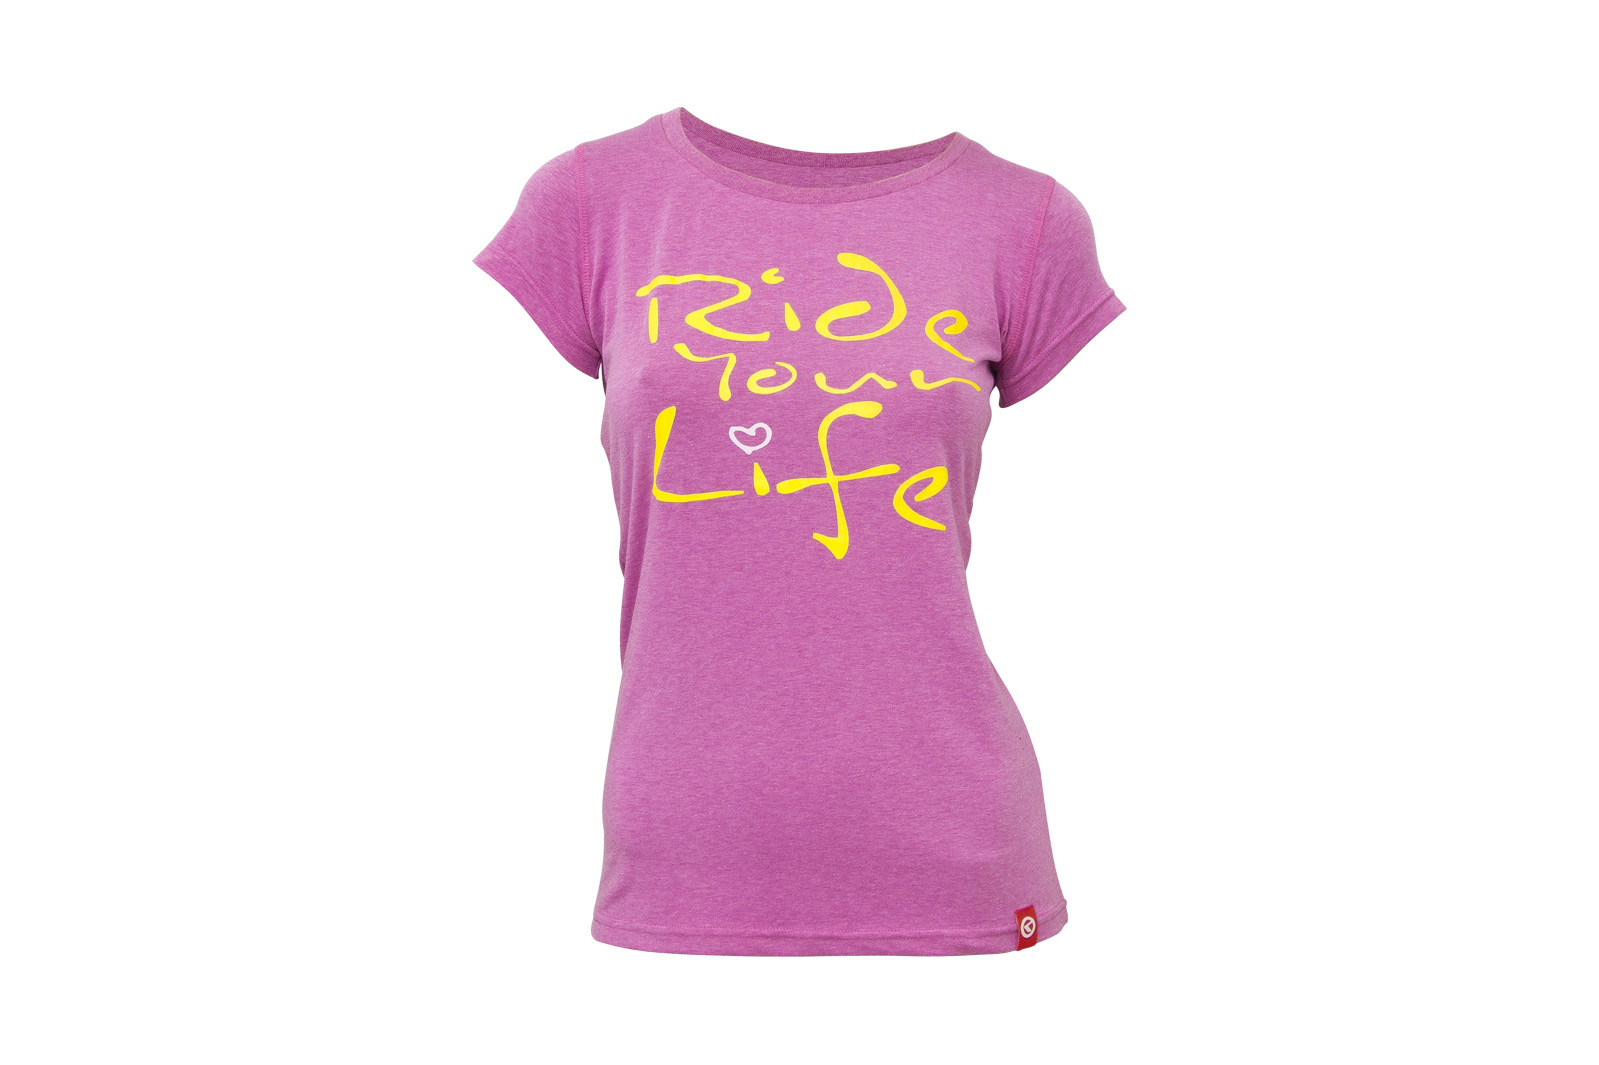 T-Shirt KELLYS WOMEN´S RIDE YOUR LIFE kurzarm Pink - L - T-Shirt KELLYS WOMEN´S RIDE YOUR LIFE kurzarm Pink - L